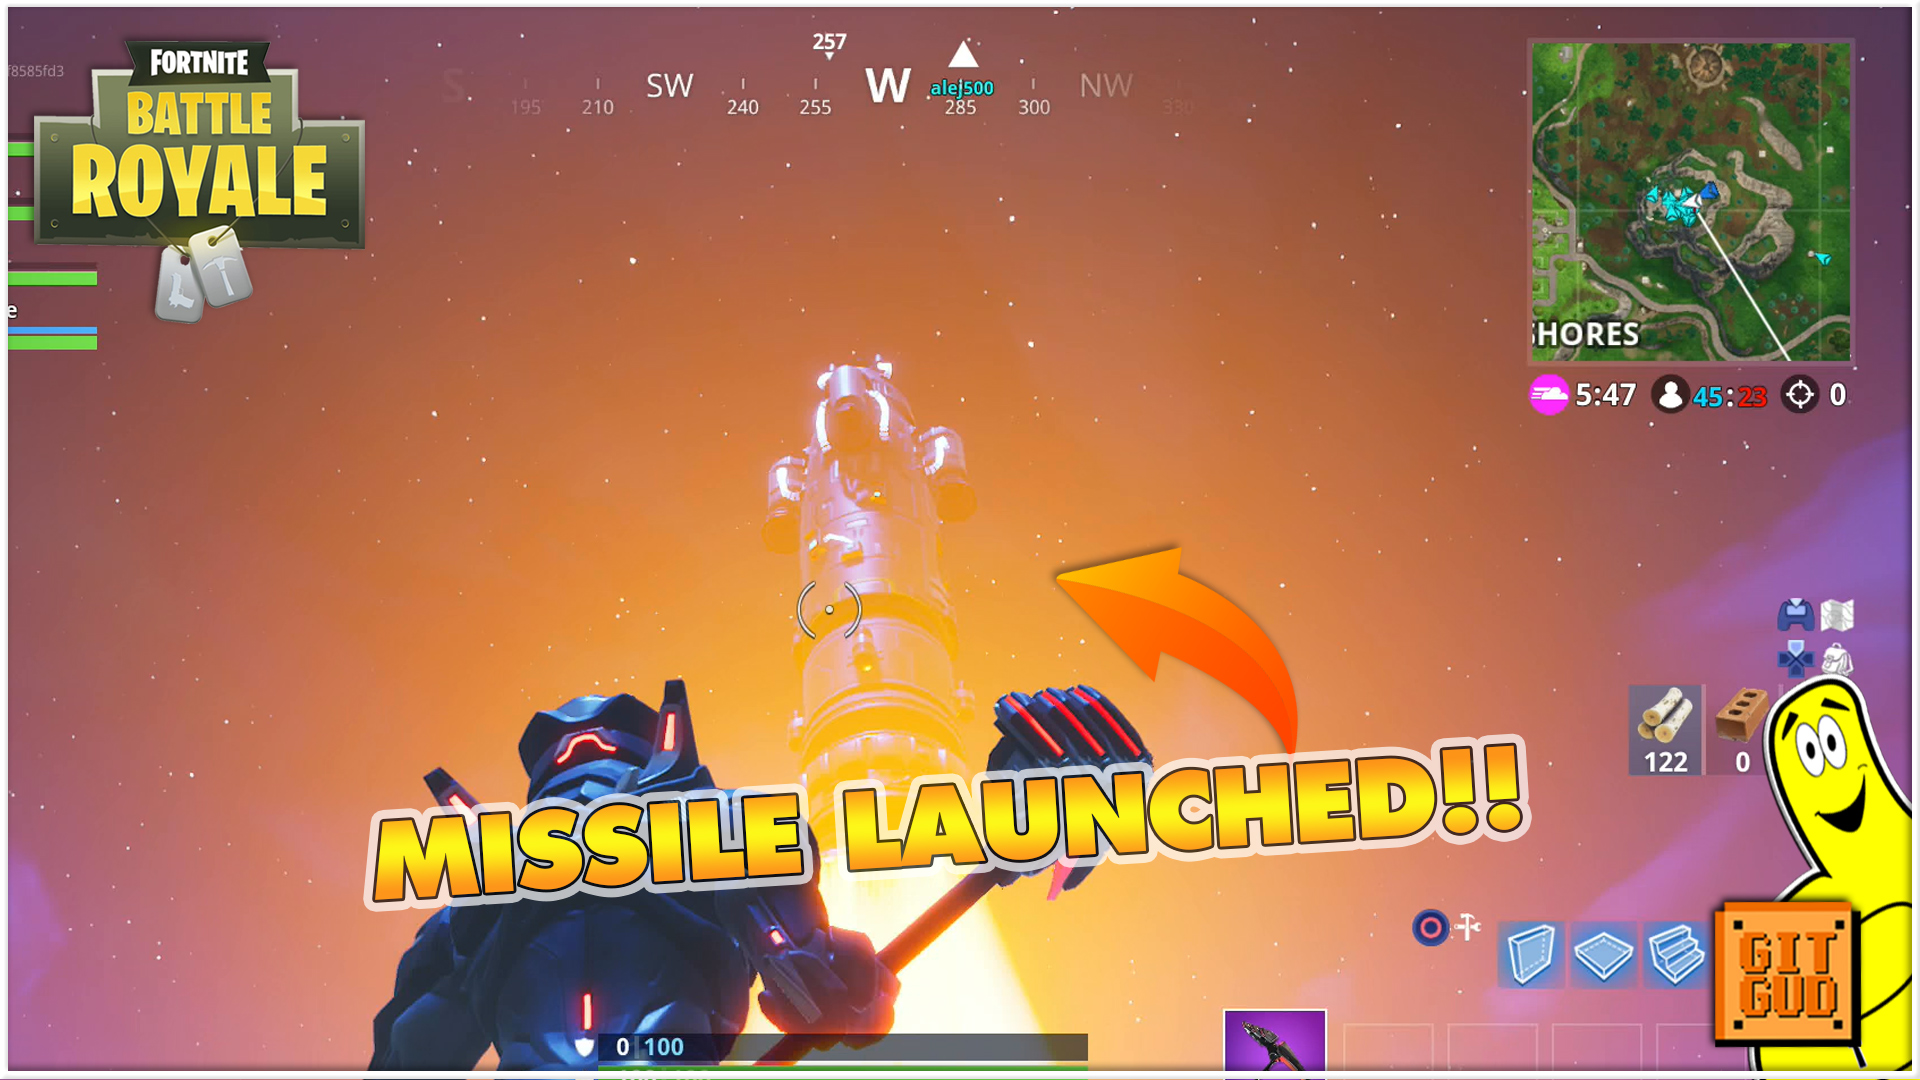 Fortnite Battle Royale: Missile Launch!!! – HTG